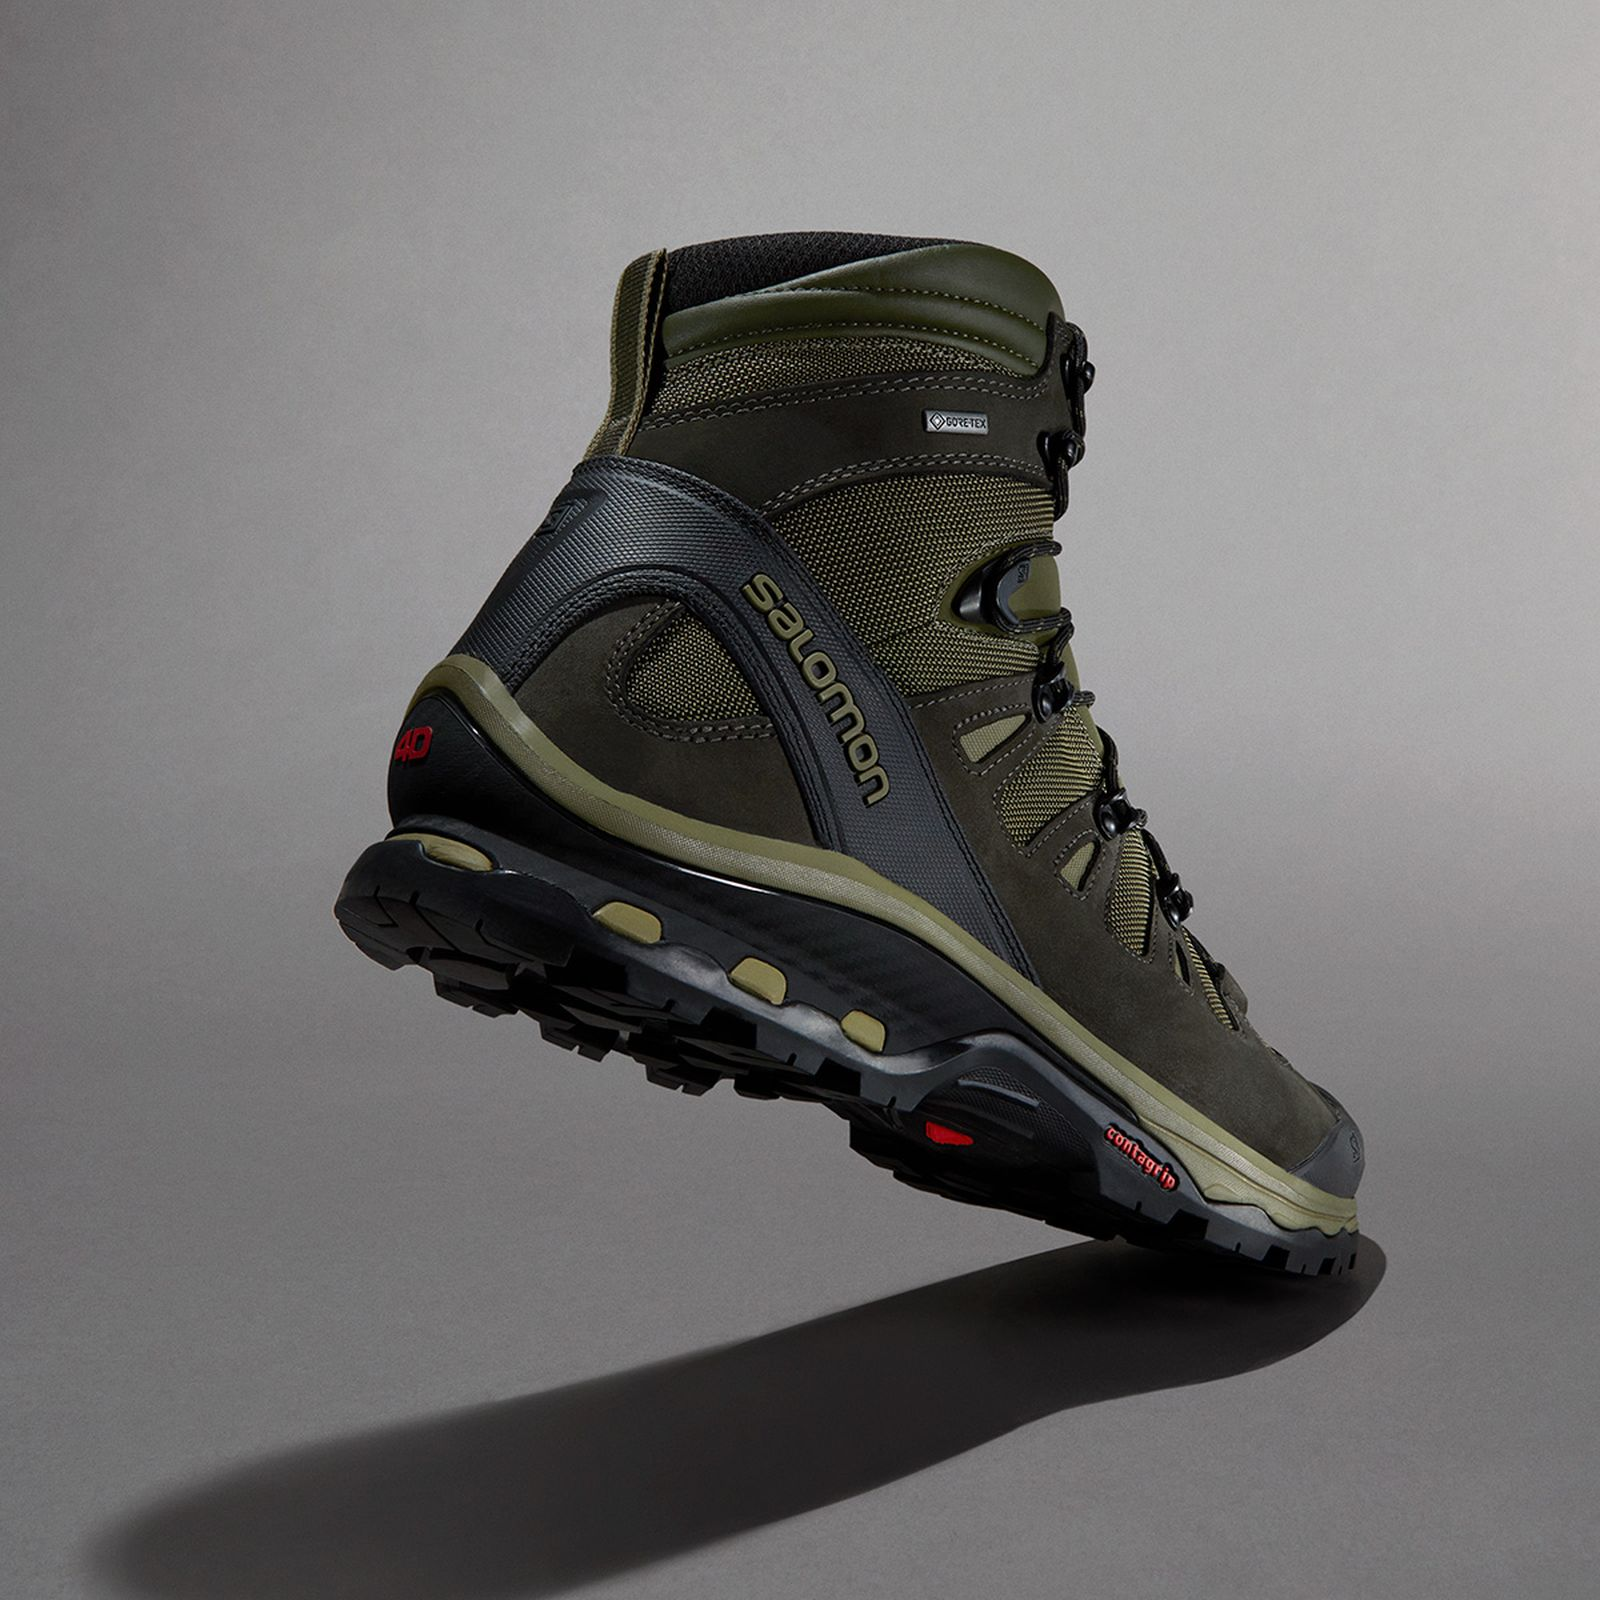 03tested-5-trekking-boots-find-best-outdoors-style-